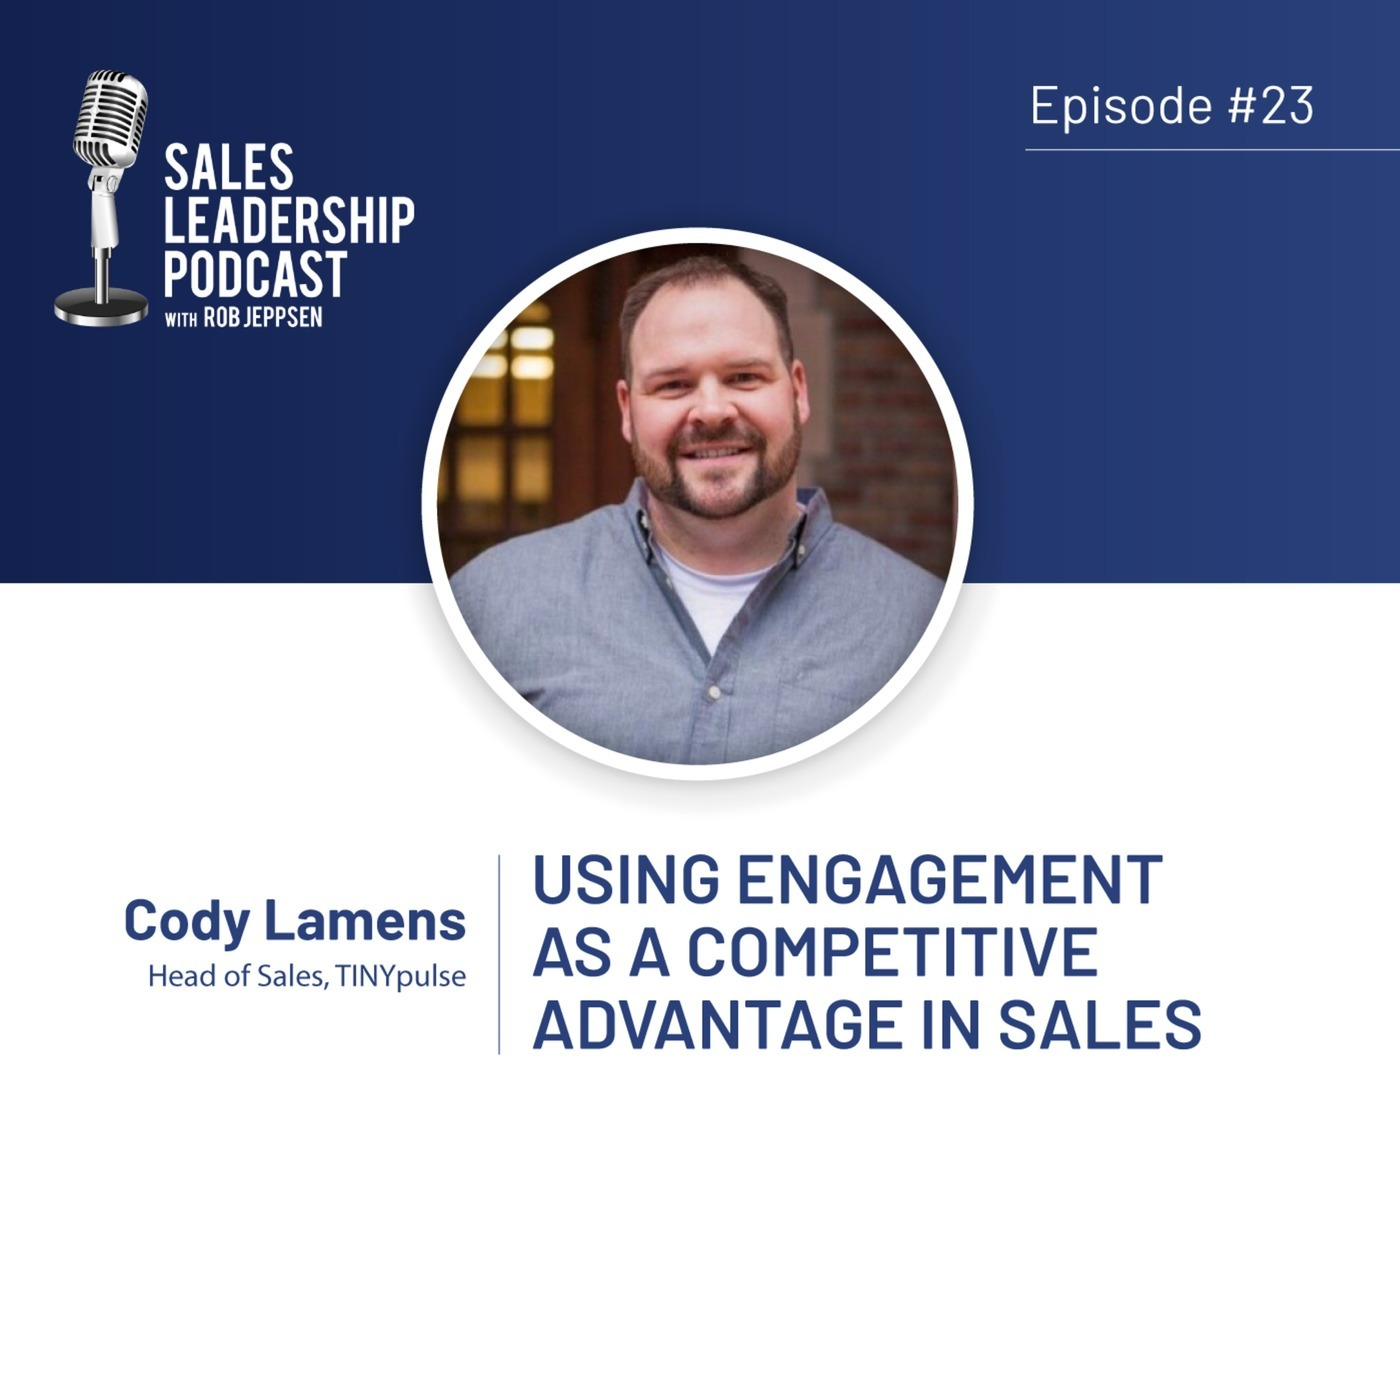 Sales Leadership Podcast 23: #23: Cody Lamens of TINYpulse—Using engagement as a Competitive Advantage in Sales